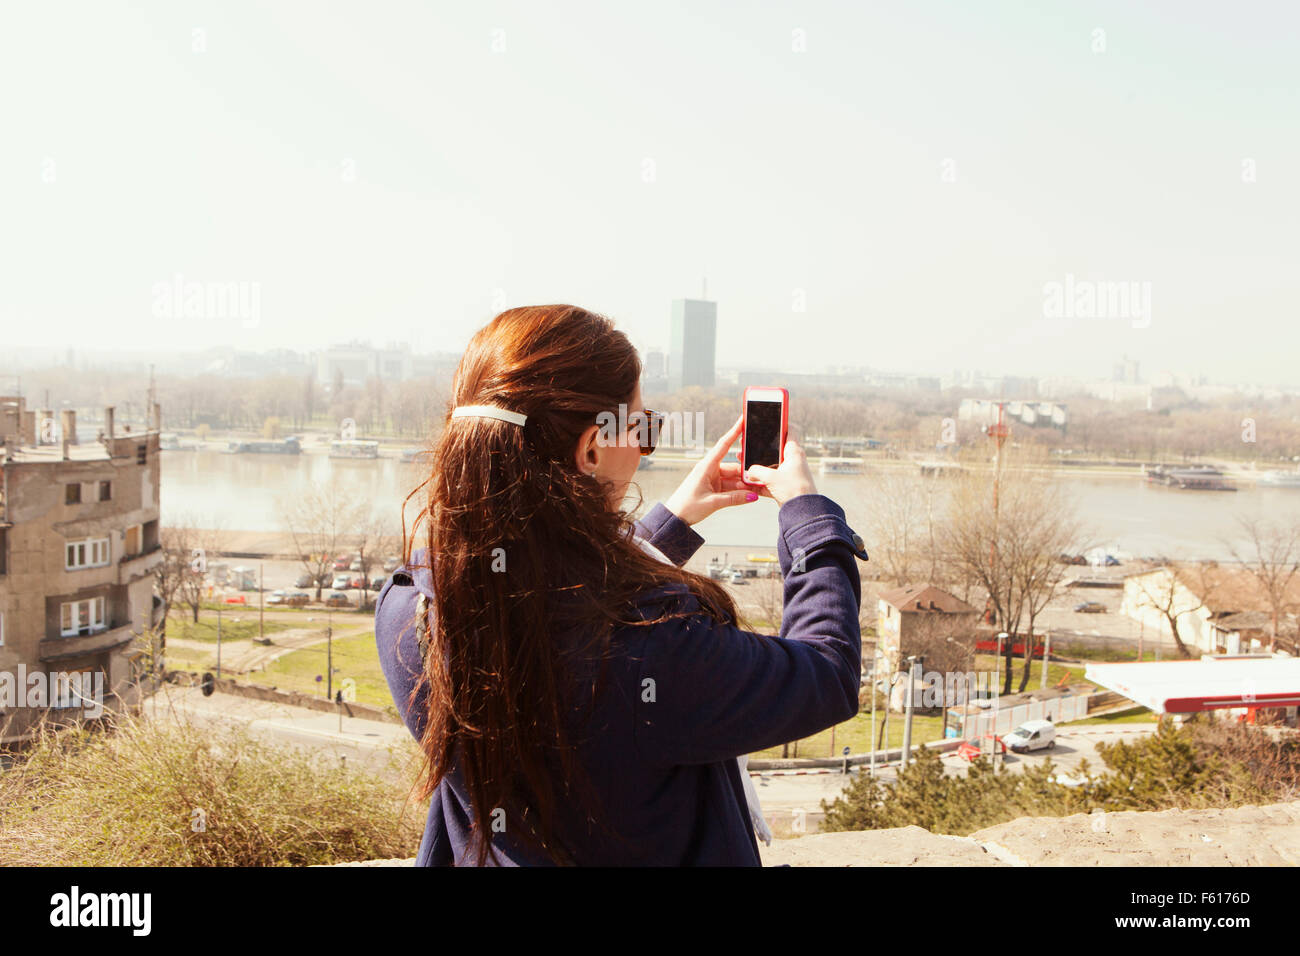 Rear view of young woman photographing cityscape against clear sky - Stock Image